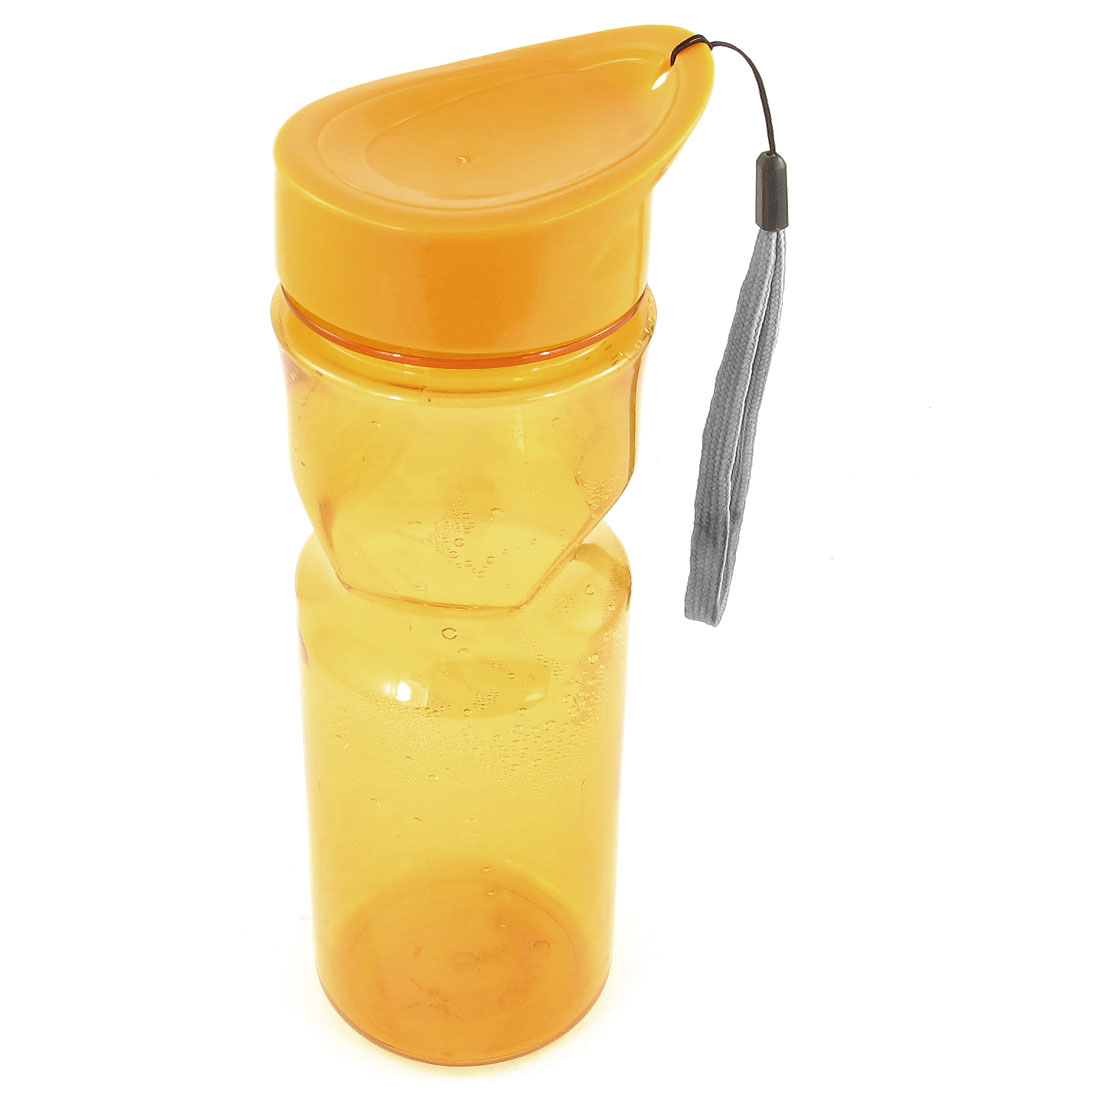 Cylinder Shape Plastic Clear Tea Water Drink Bottle Cup Holder Orange 500ml